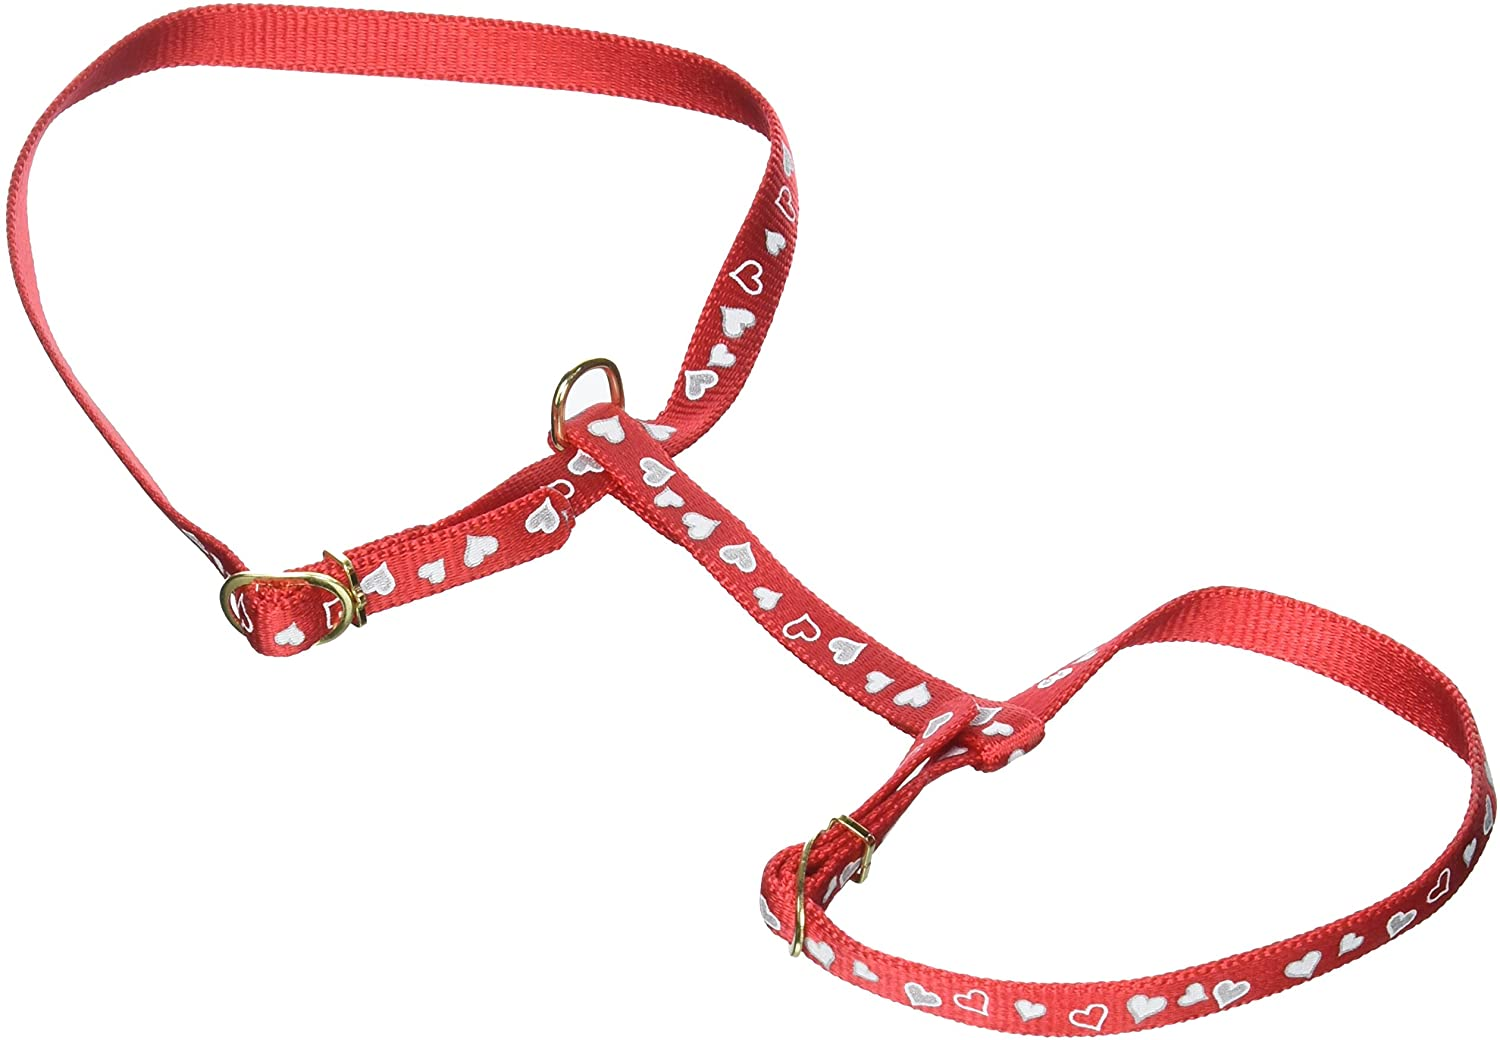 Zolux Cat Harness Reflective Heart Red 10mm